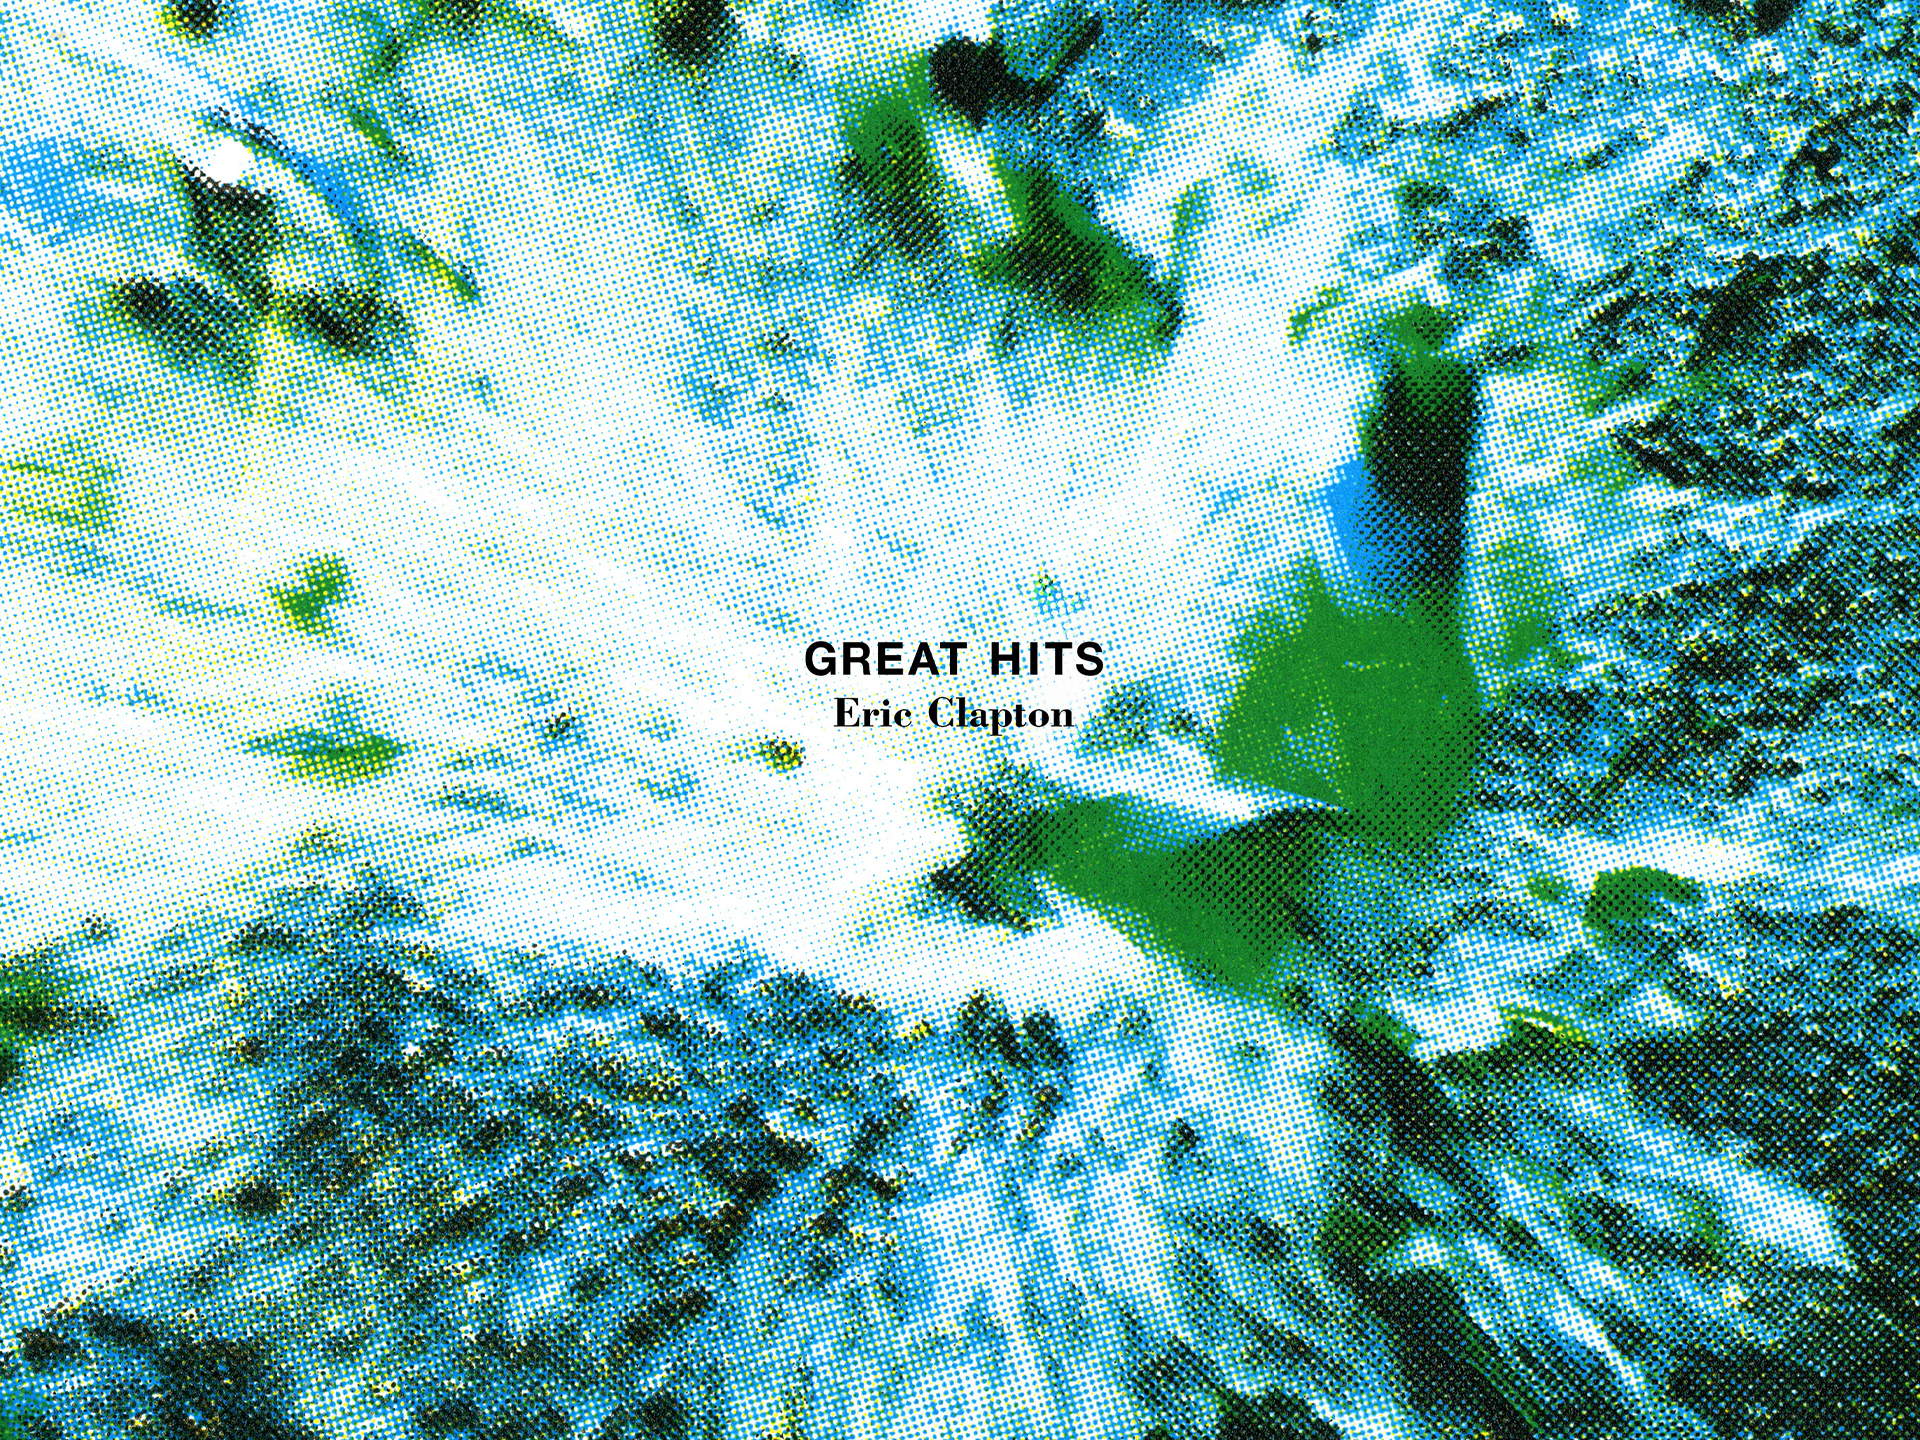 Great Hits_01